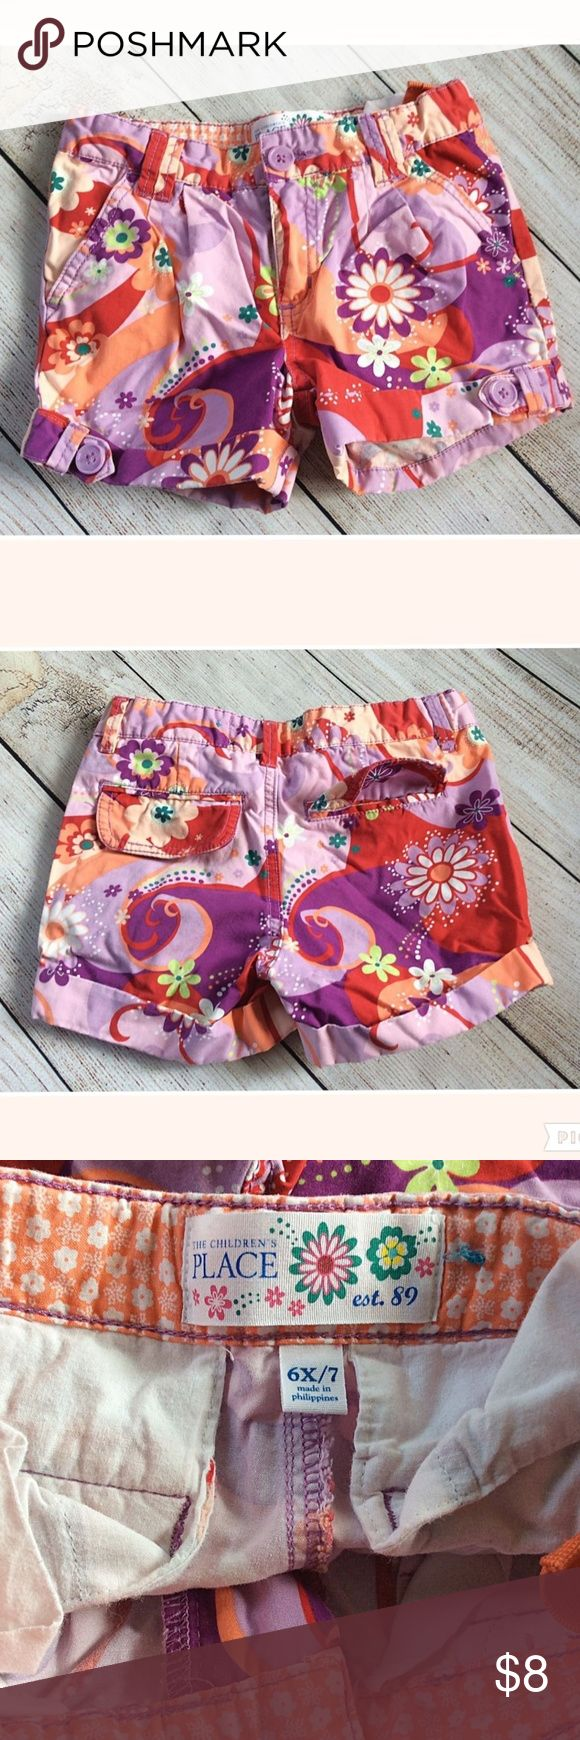 """6X/7 Girls Shorts Pink Purple Psychadelic Floral The Children's Place girls shorts size 6X-7. Good condition. Adjustable waist.  Measurements laying flat  Waist 11.5""""  Rise 7""""  Inseam 2.5"""" The Children's Place Bottoms Shorts"""